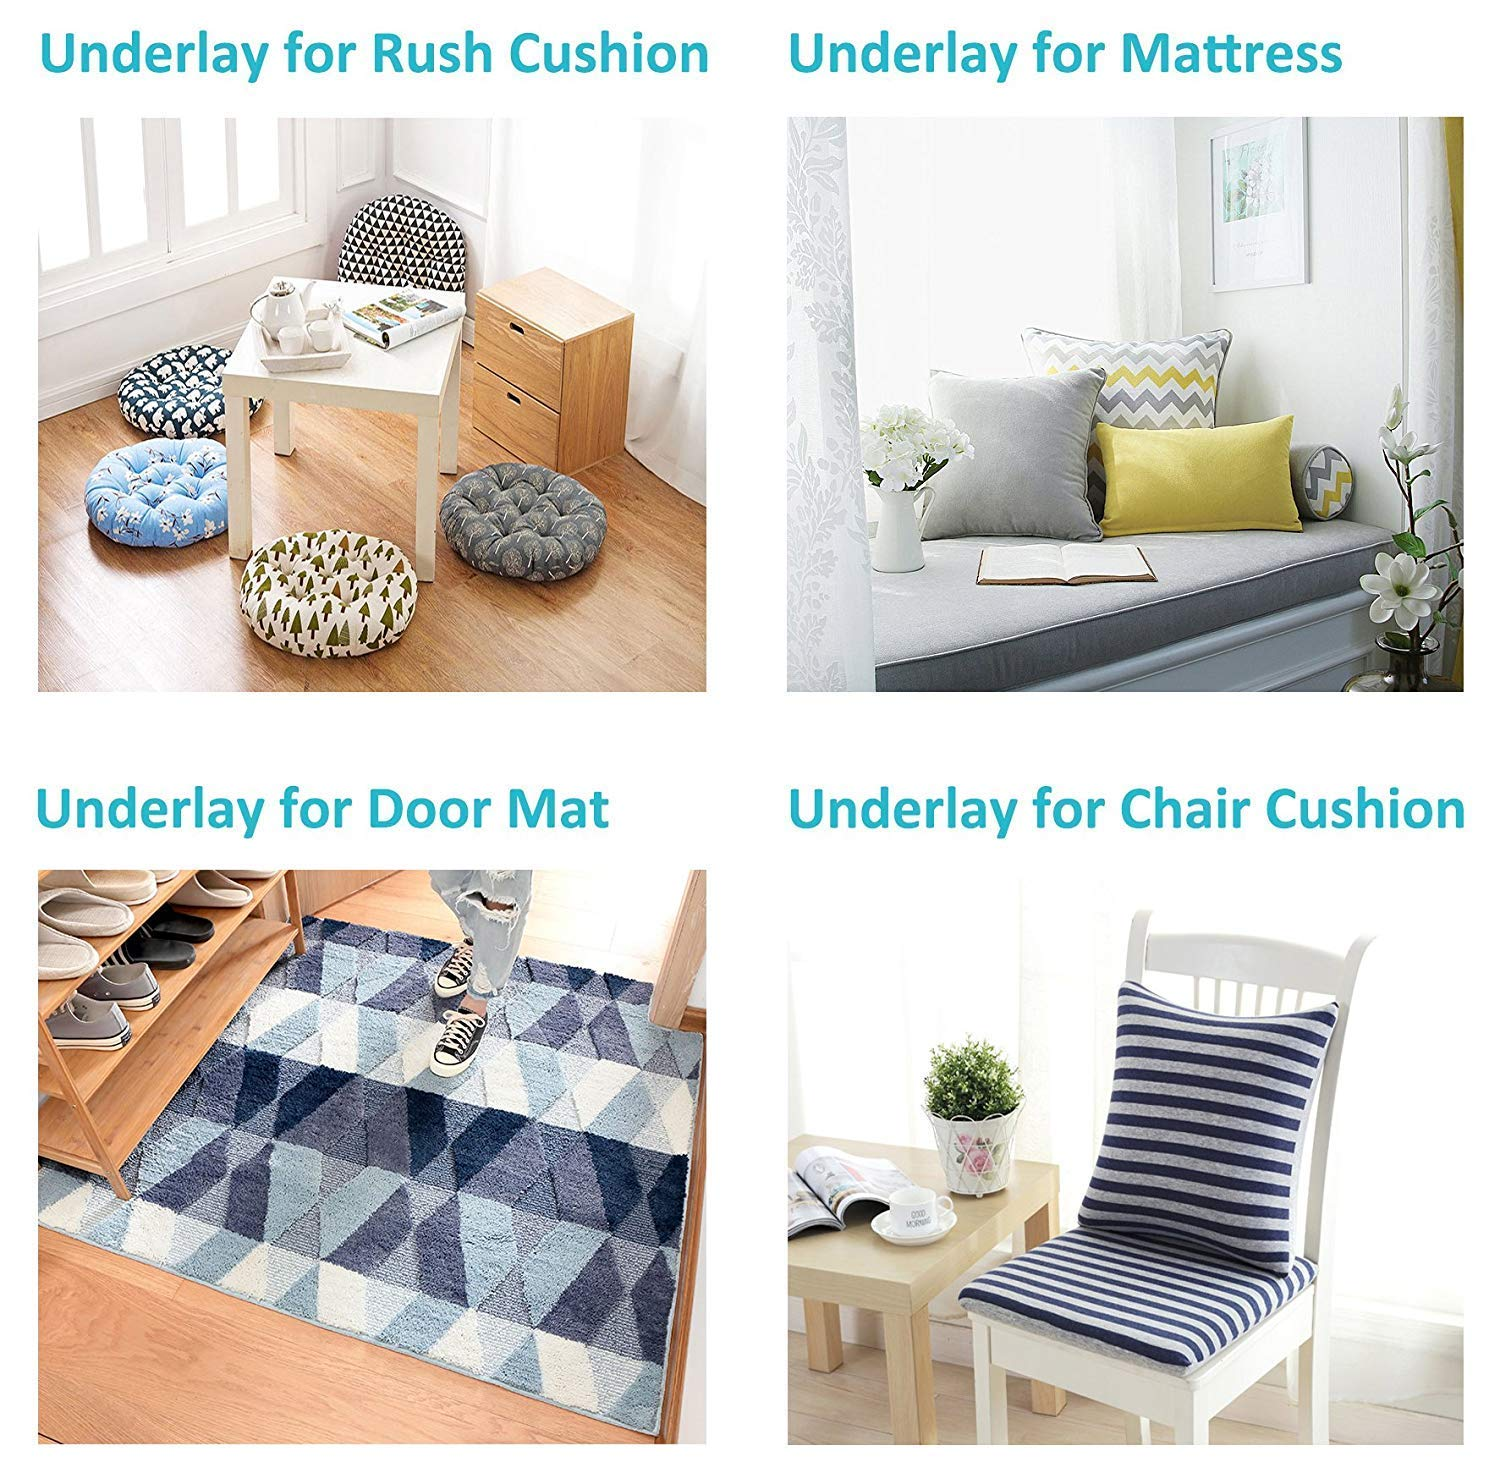 1 Pack BLS Non-Slip Cushion Underlay Couch Underlay Pad Keep Your Cushions Stay in The Place for Sofa Upgraded Double Sided Anti-Slip Silicone Felt in The Middle 24 x 24in